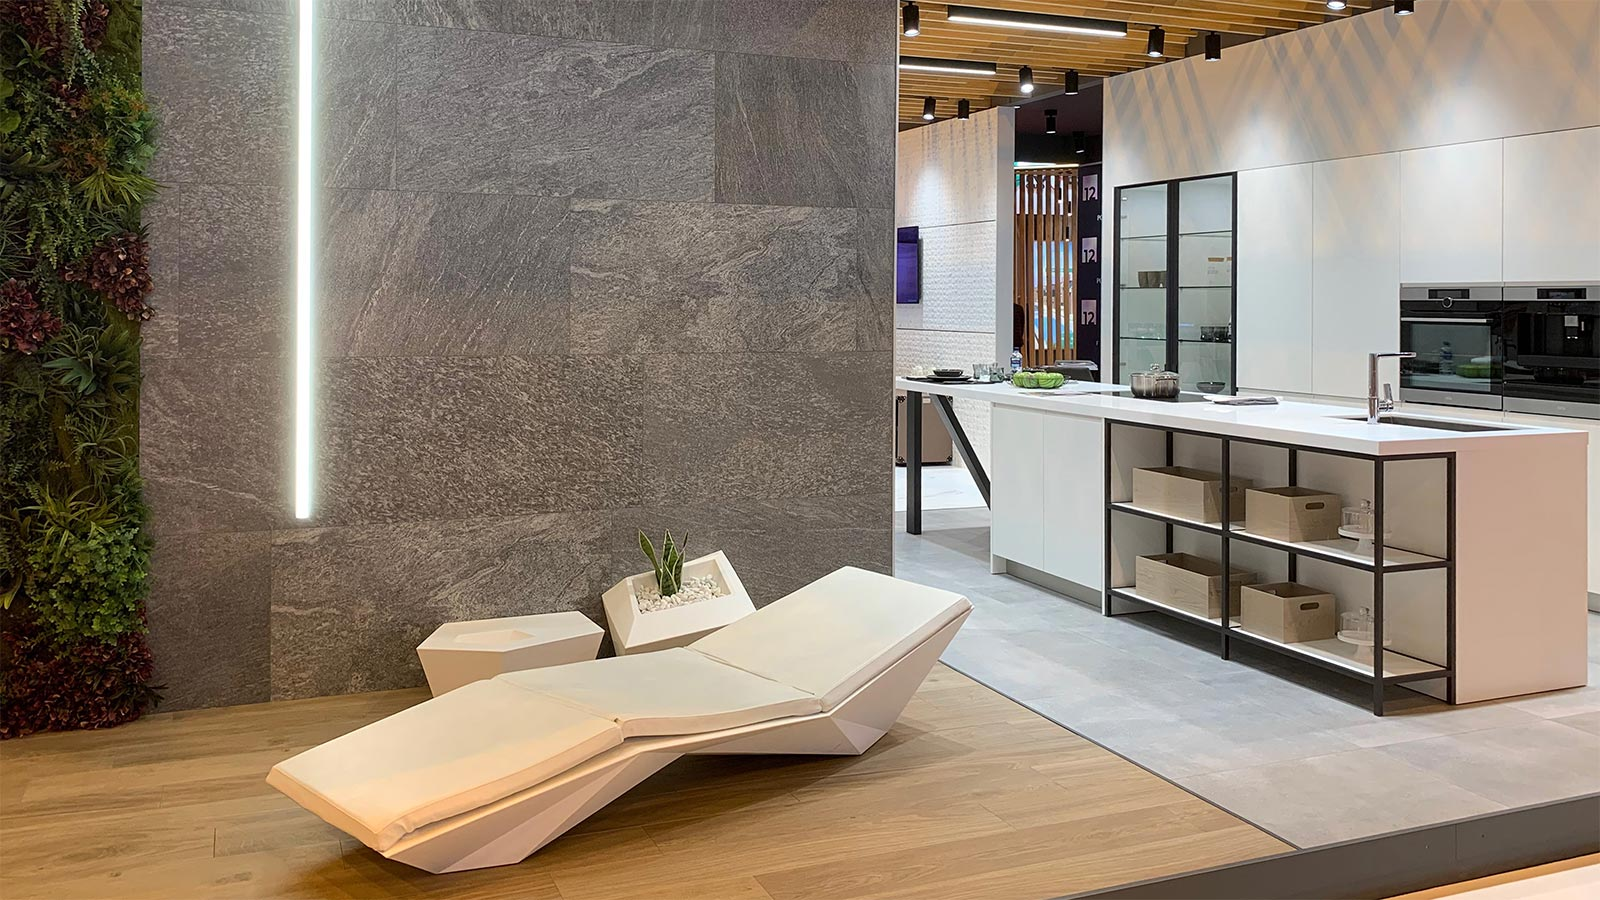 PORCELANOSA Grupo presents its latest solutions for housing at the SIMA fair